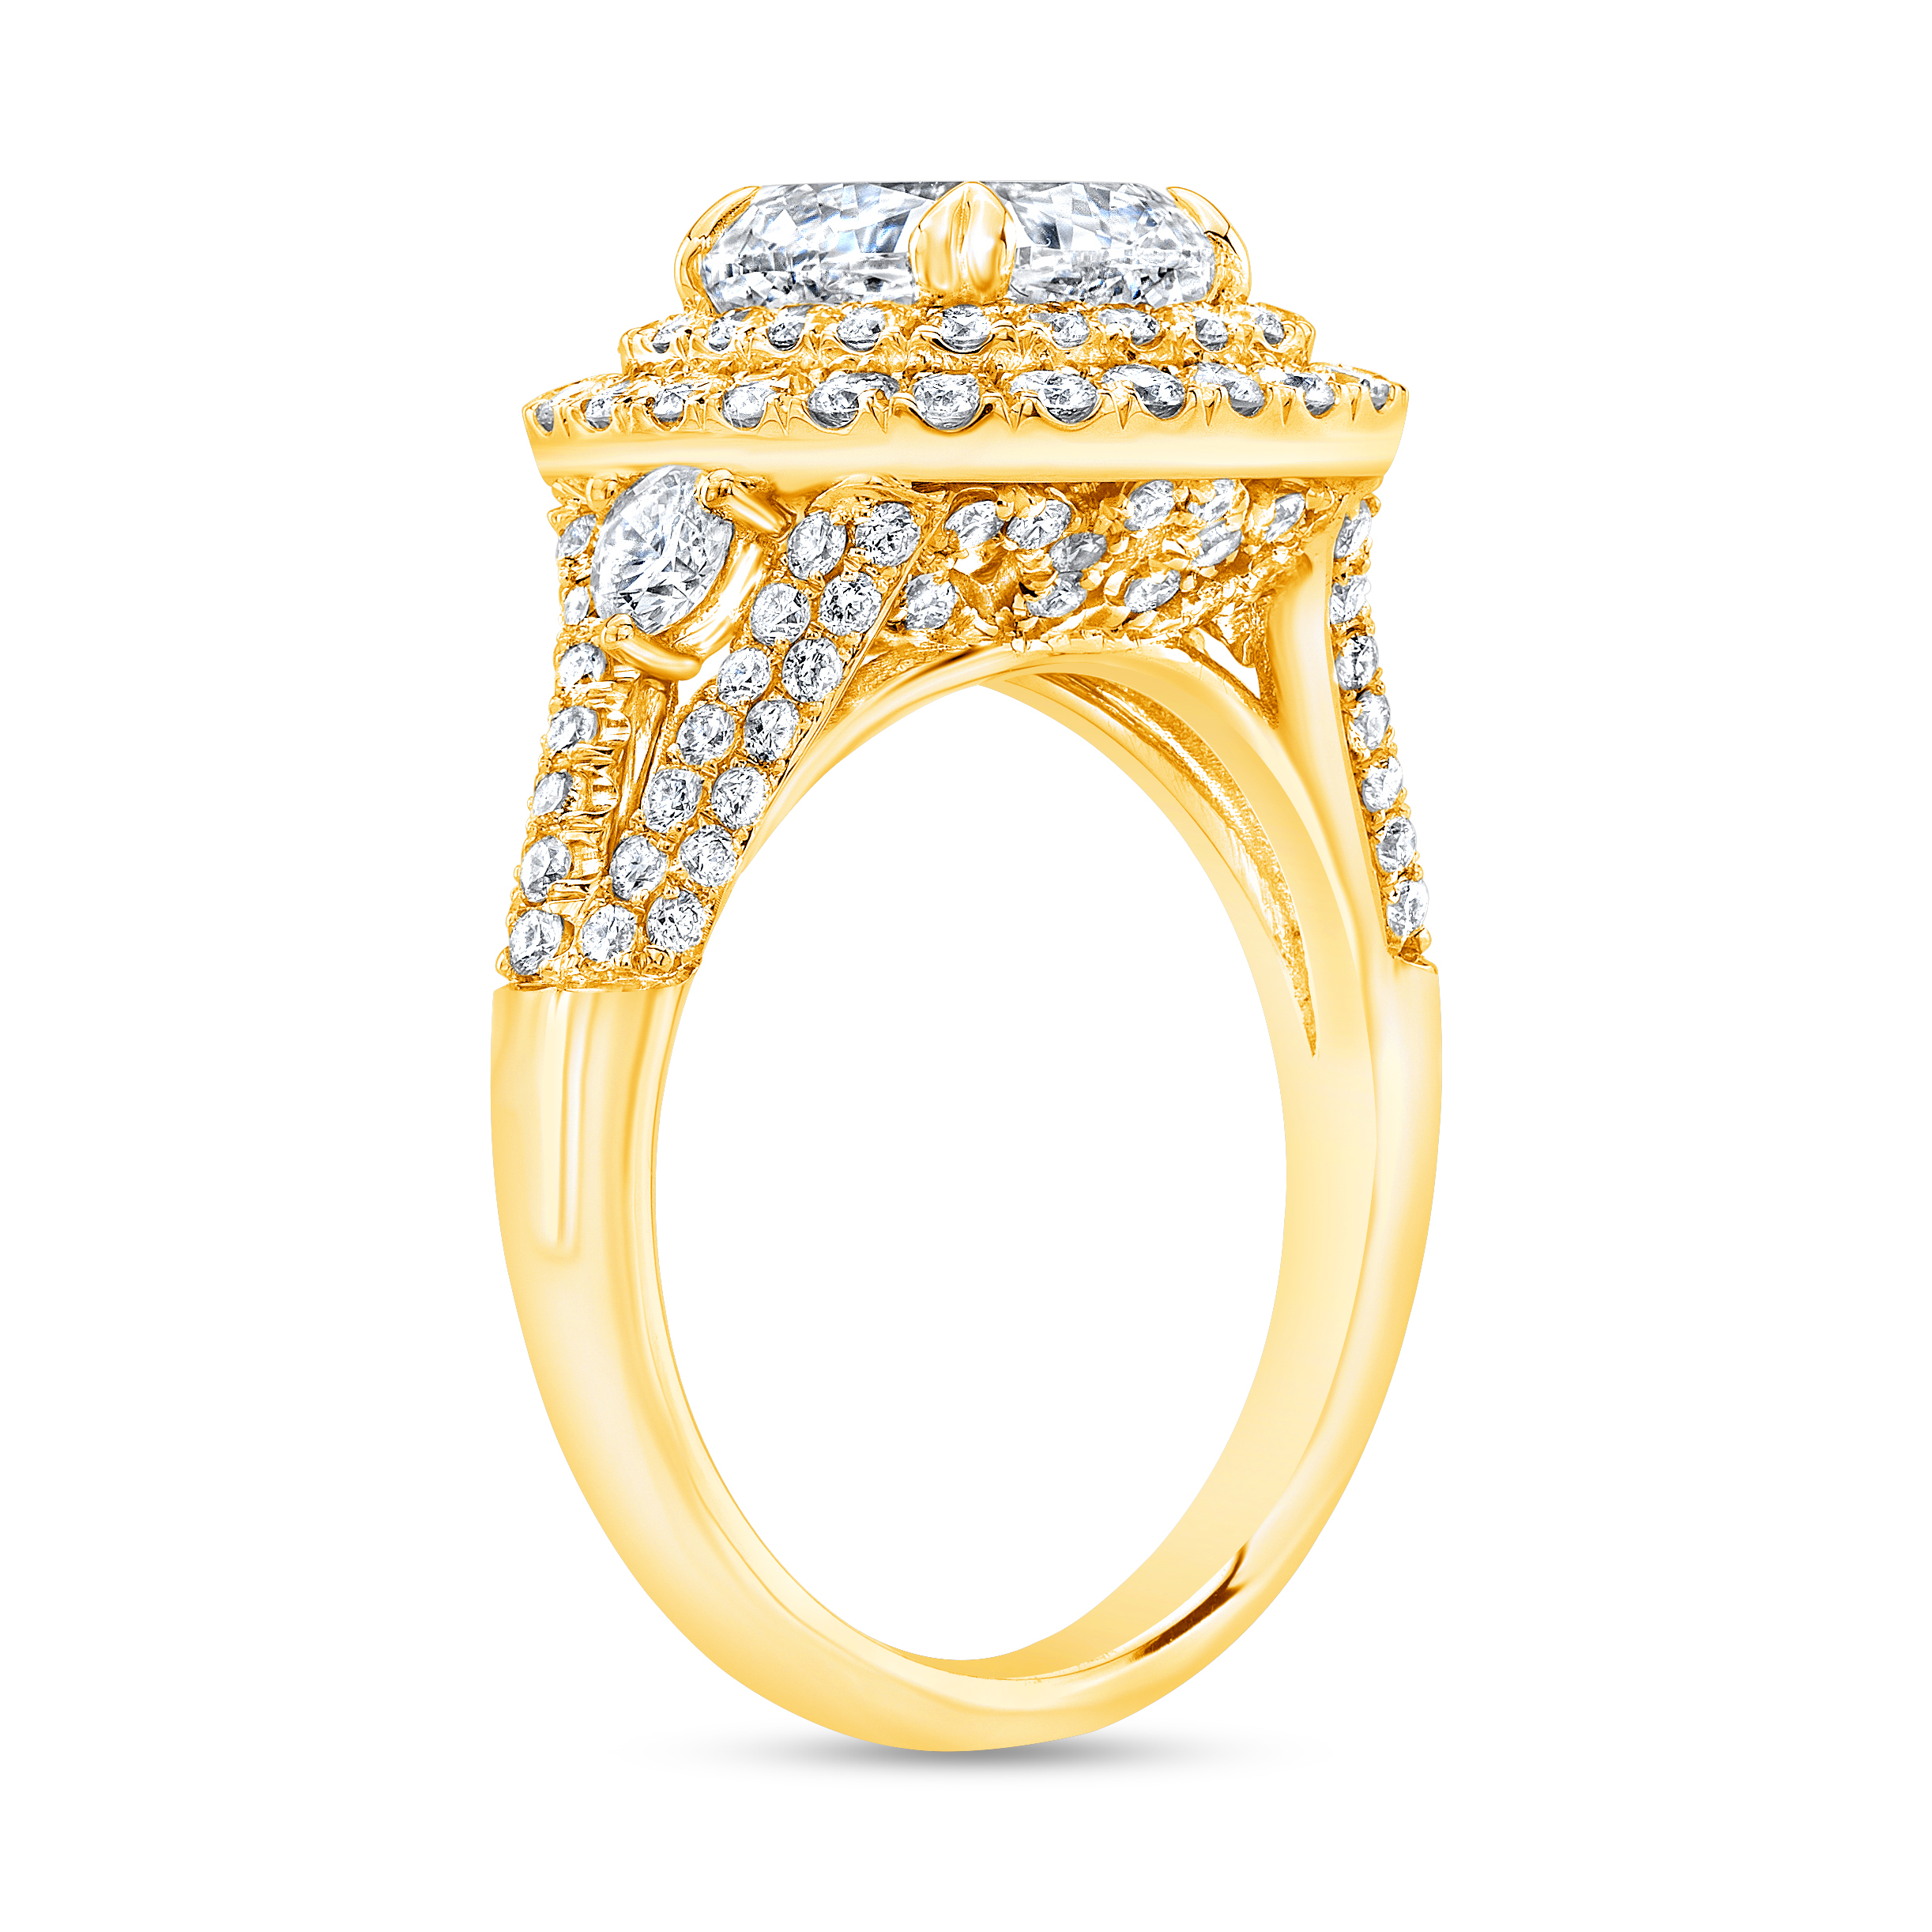 Double Halo Split Shank Micro Pave Diamond Engagement Ring in yellow gold